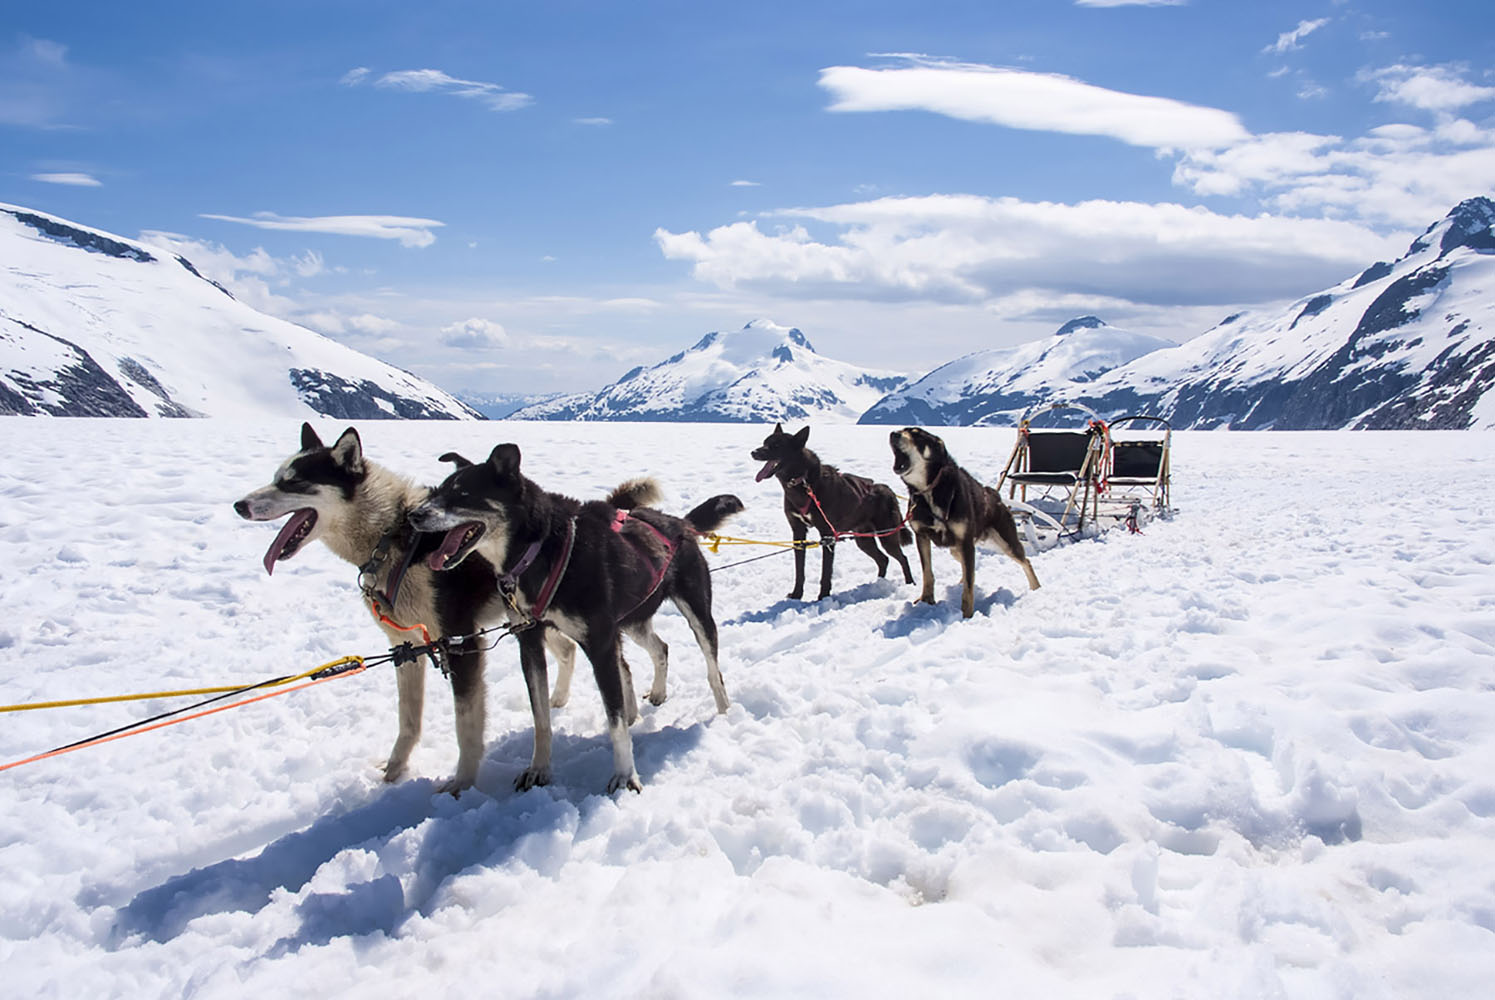 Dog-sledding is an unforgettable adventure in Alaska!